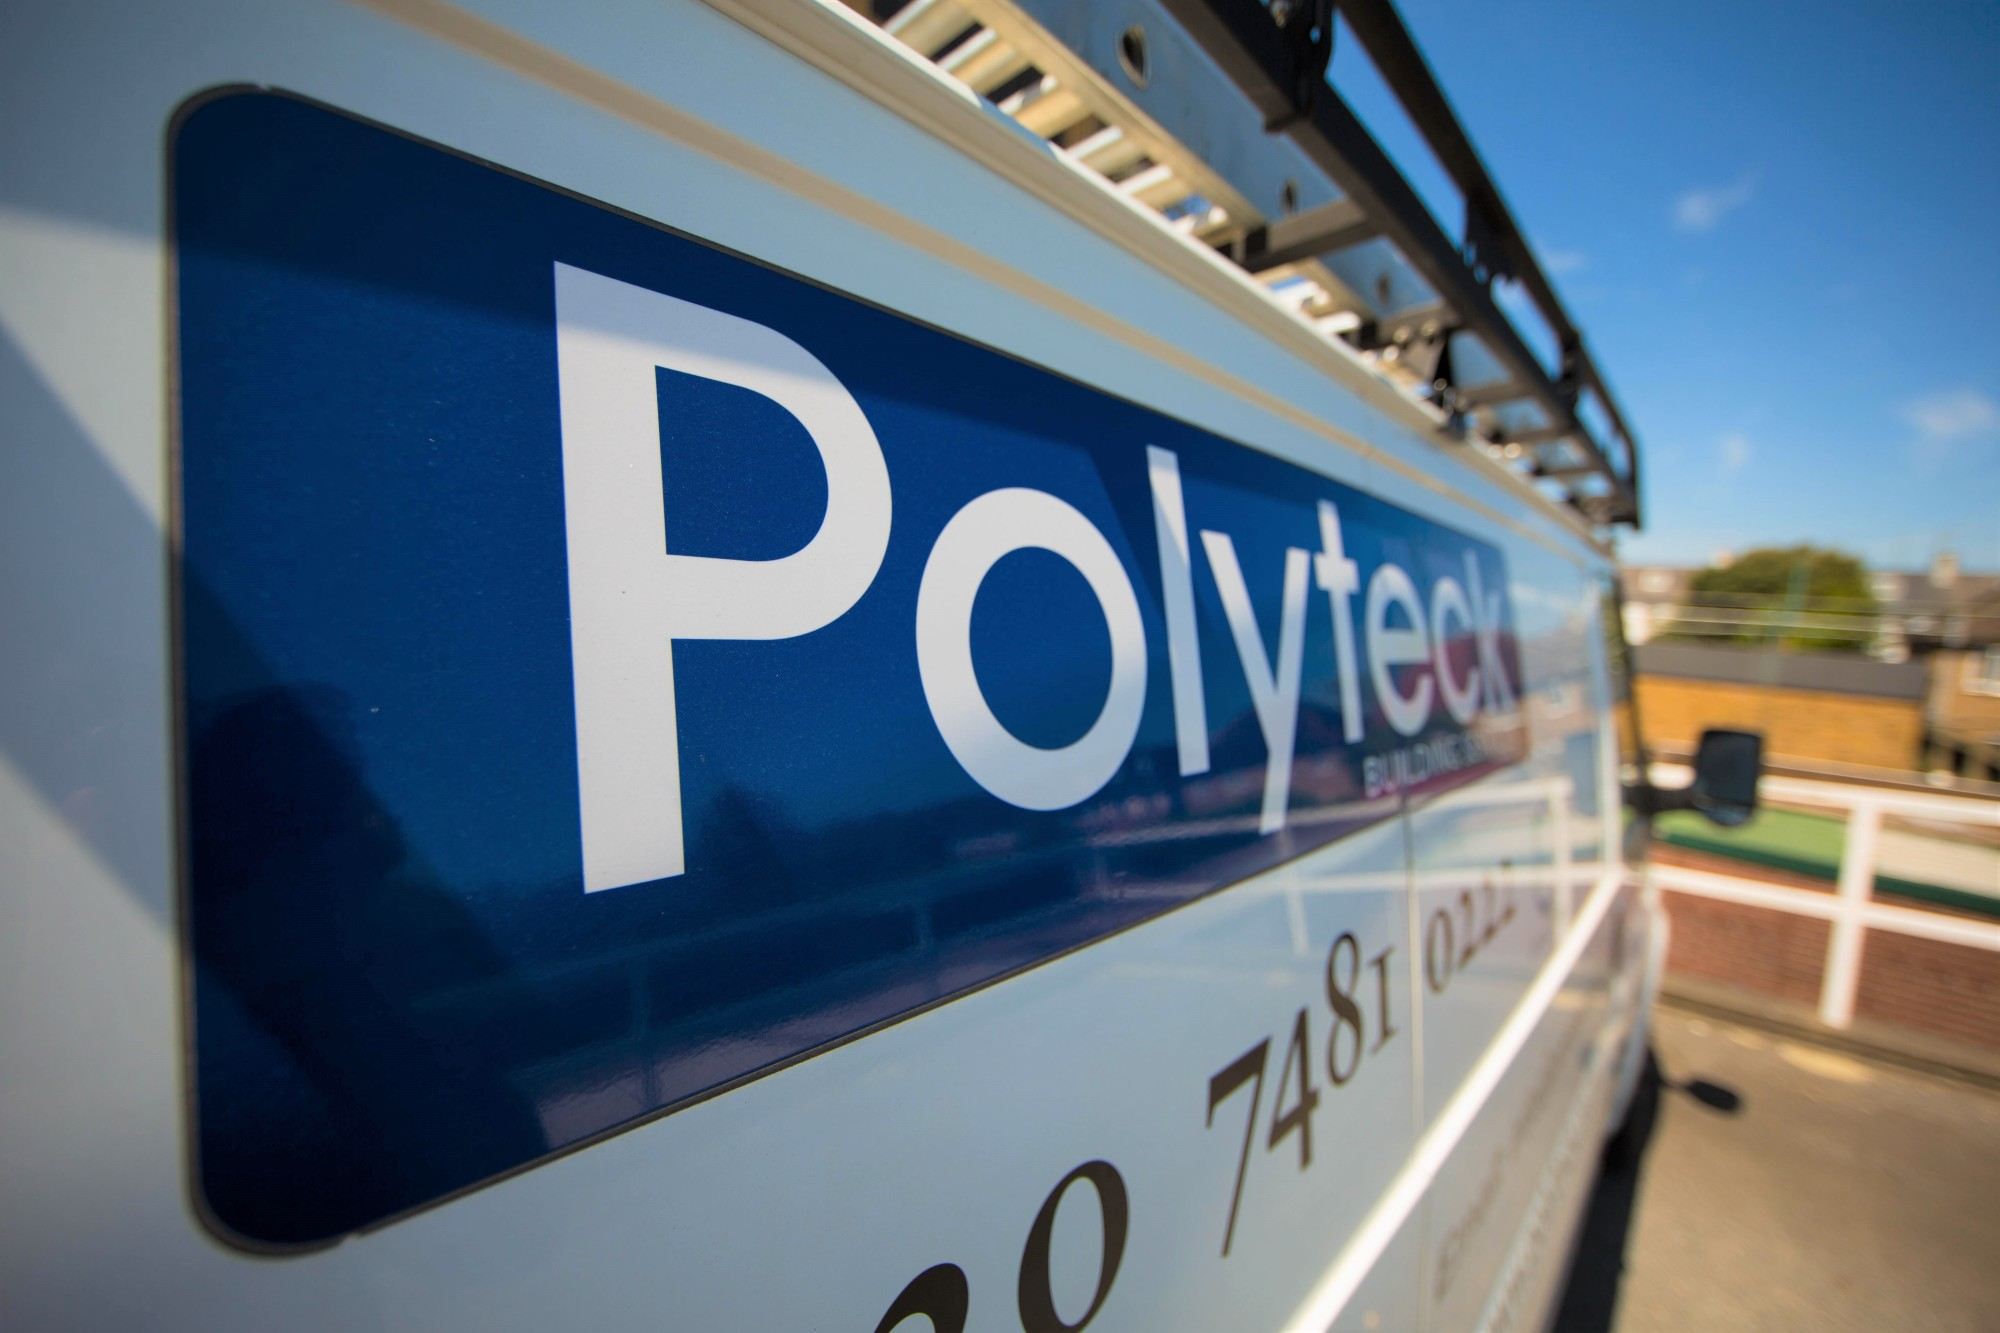 The Polyteck Group is both a construction and facilities management business.